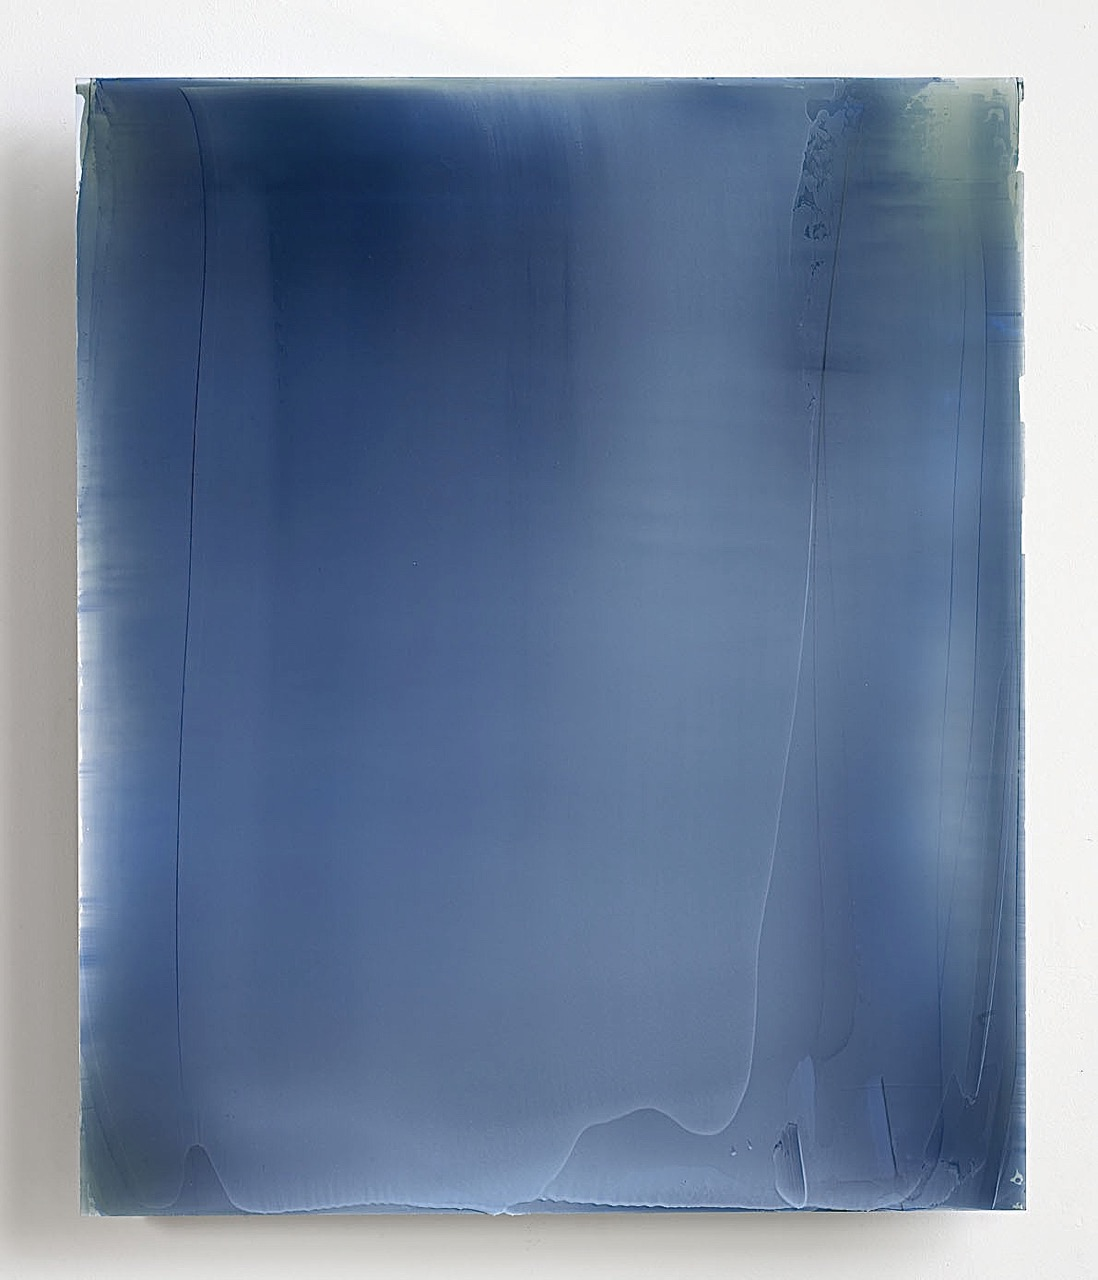 Untitled Blue, 2010, 90x75cm.jpg